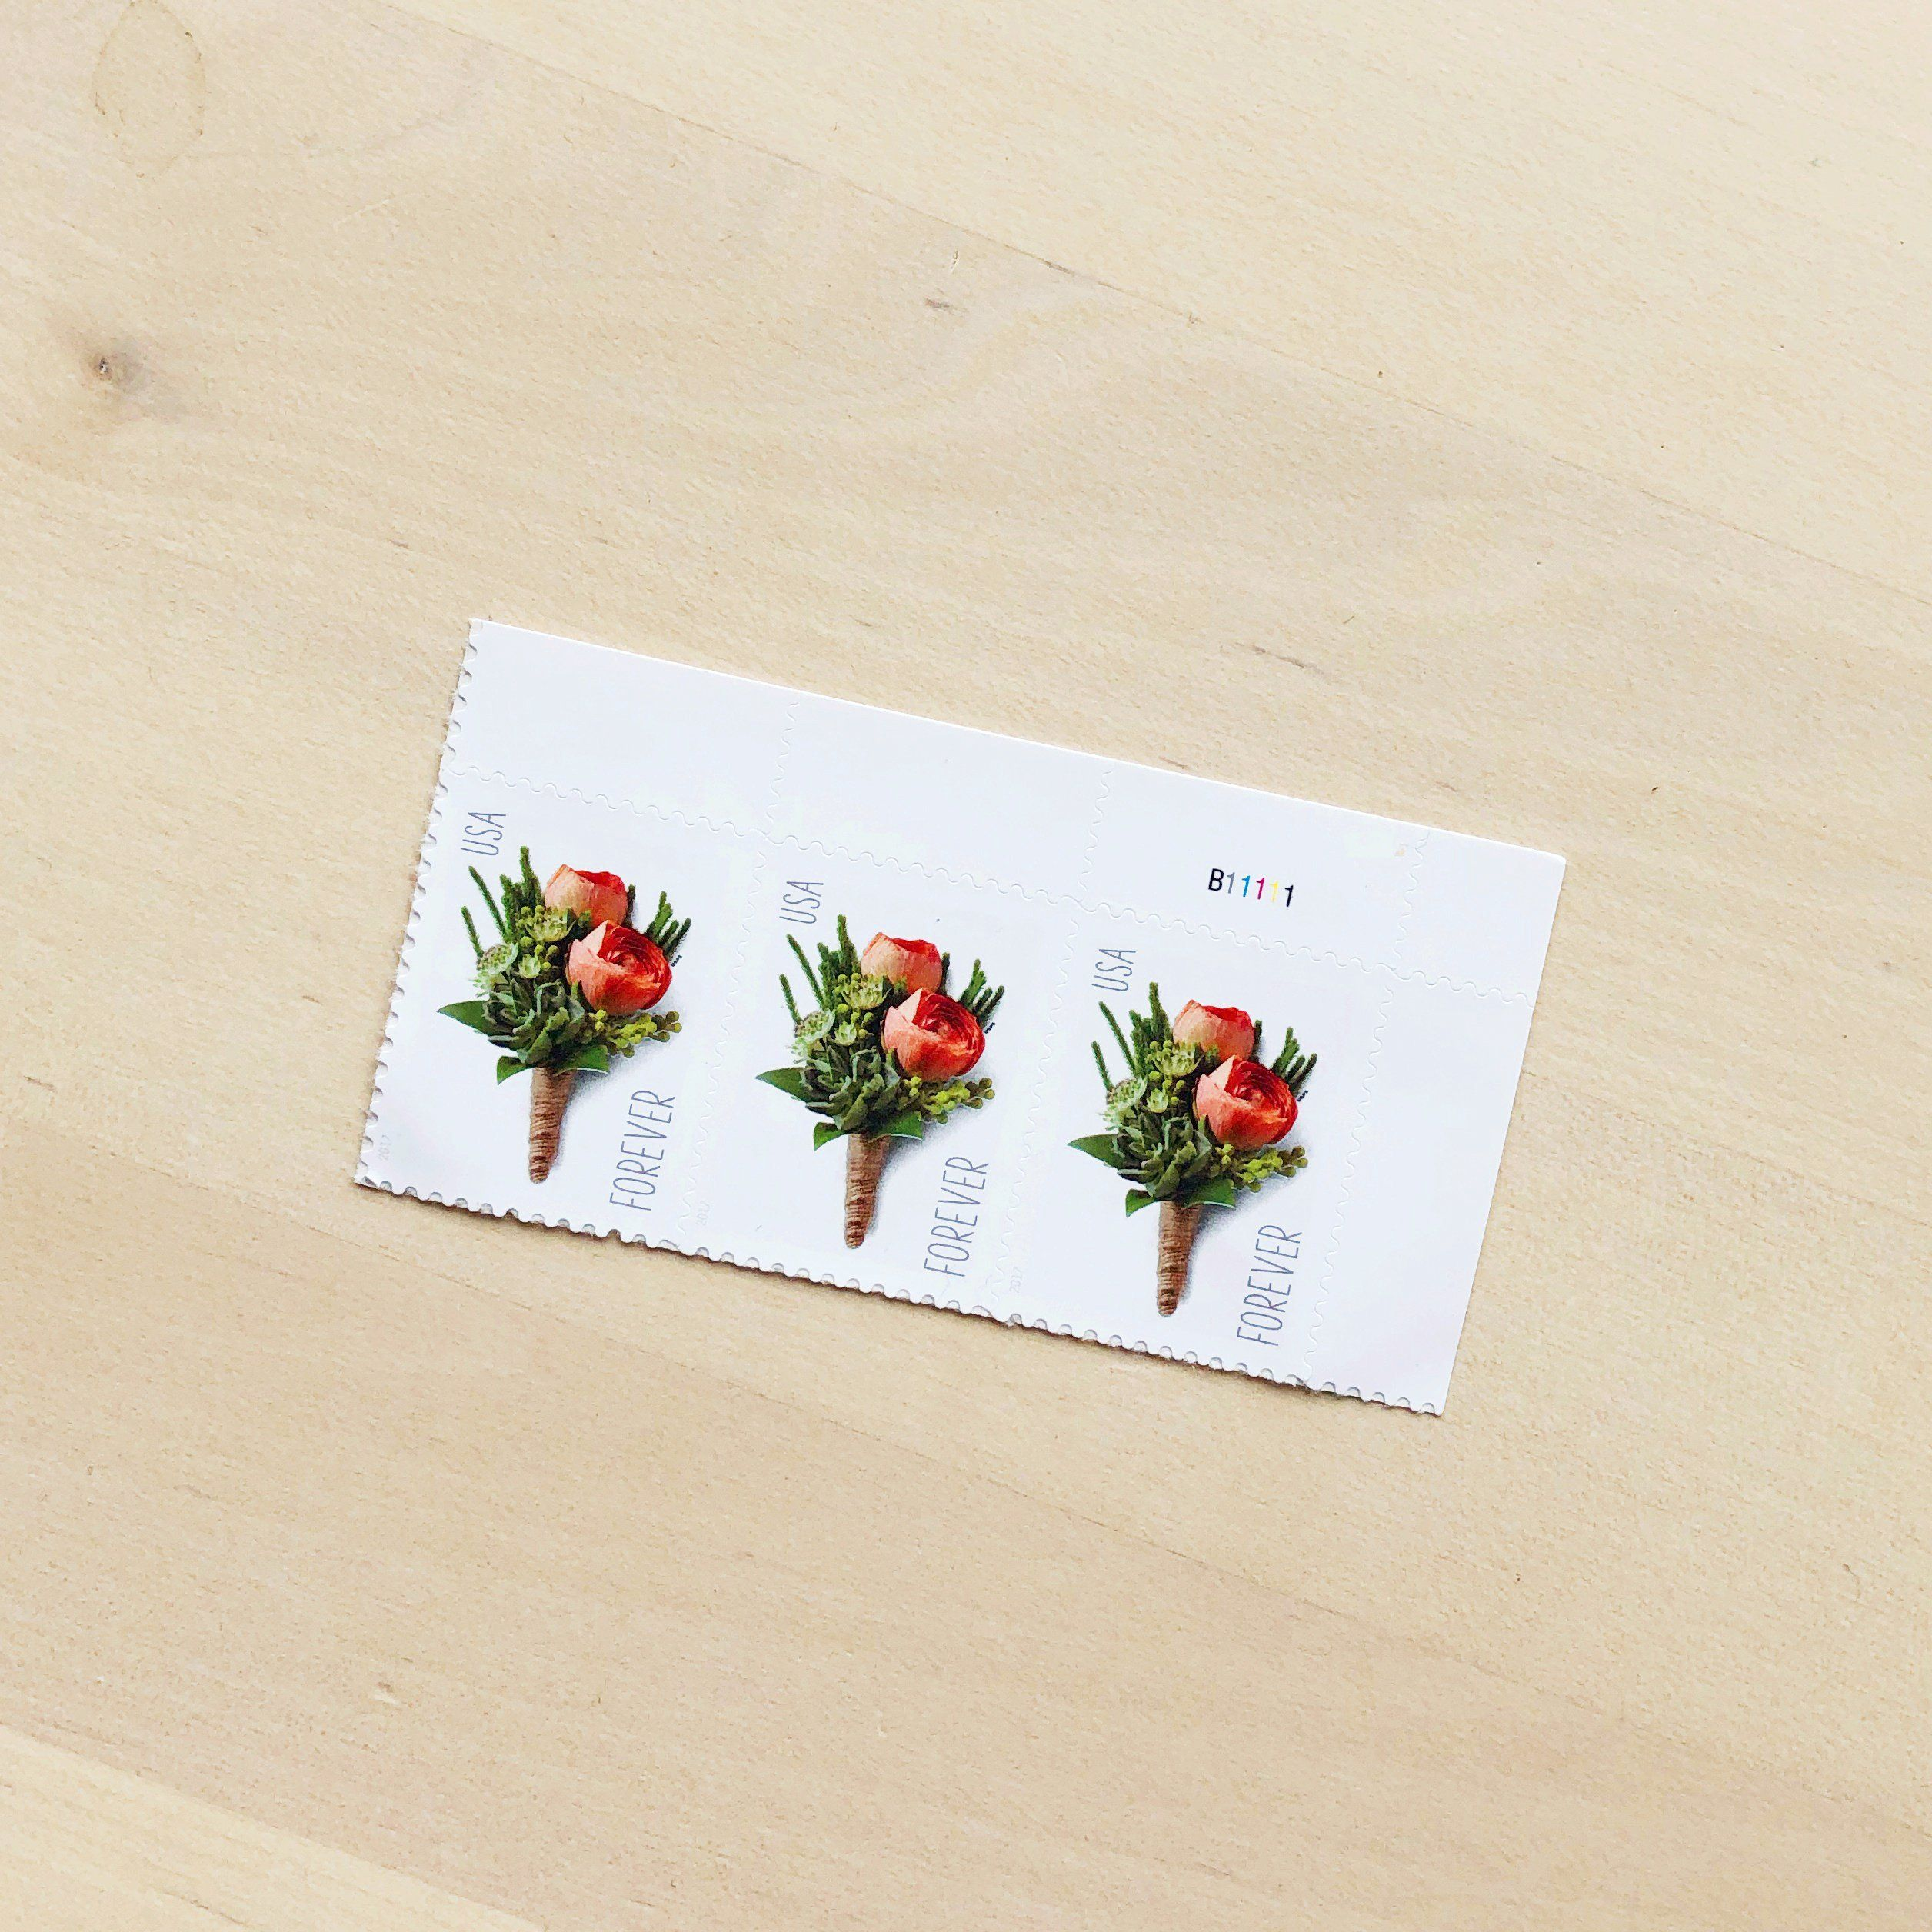 45++ Can i mail a letter to canada with forever stamps 2019 ideas